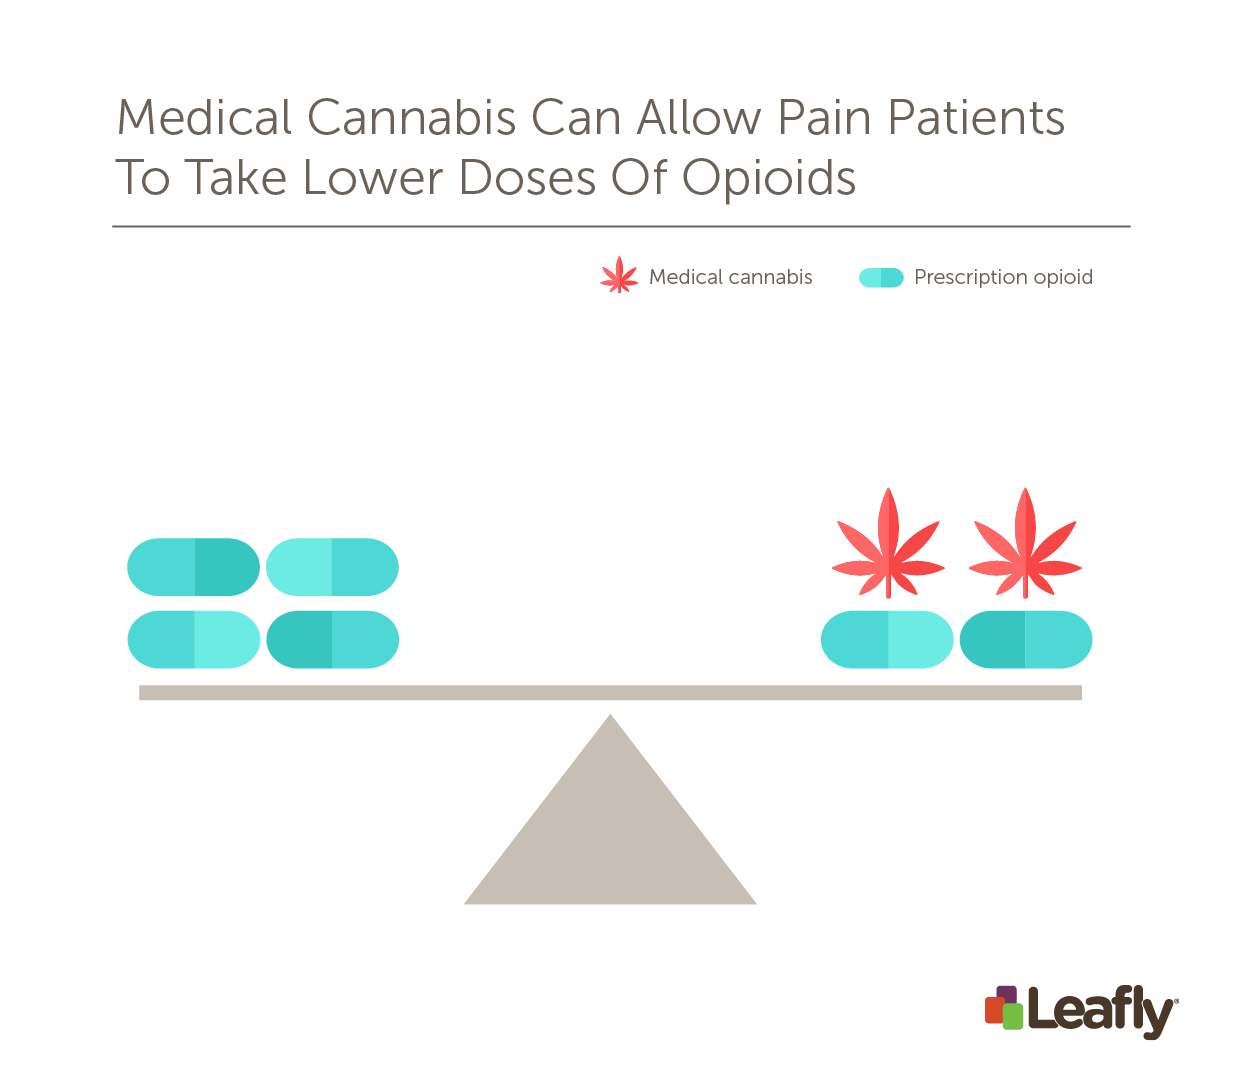 Medical cannabis can allow pain patients to take lower doses of opioids